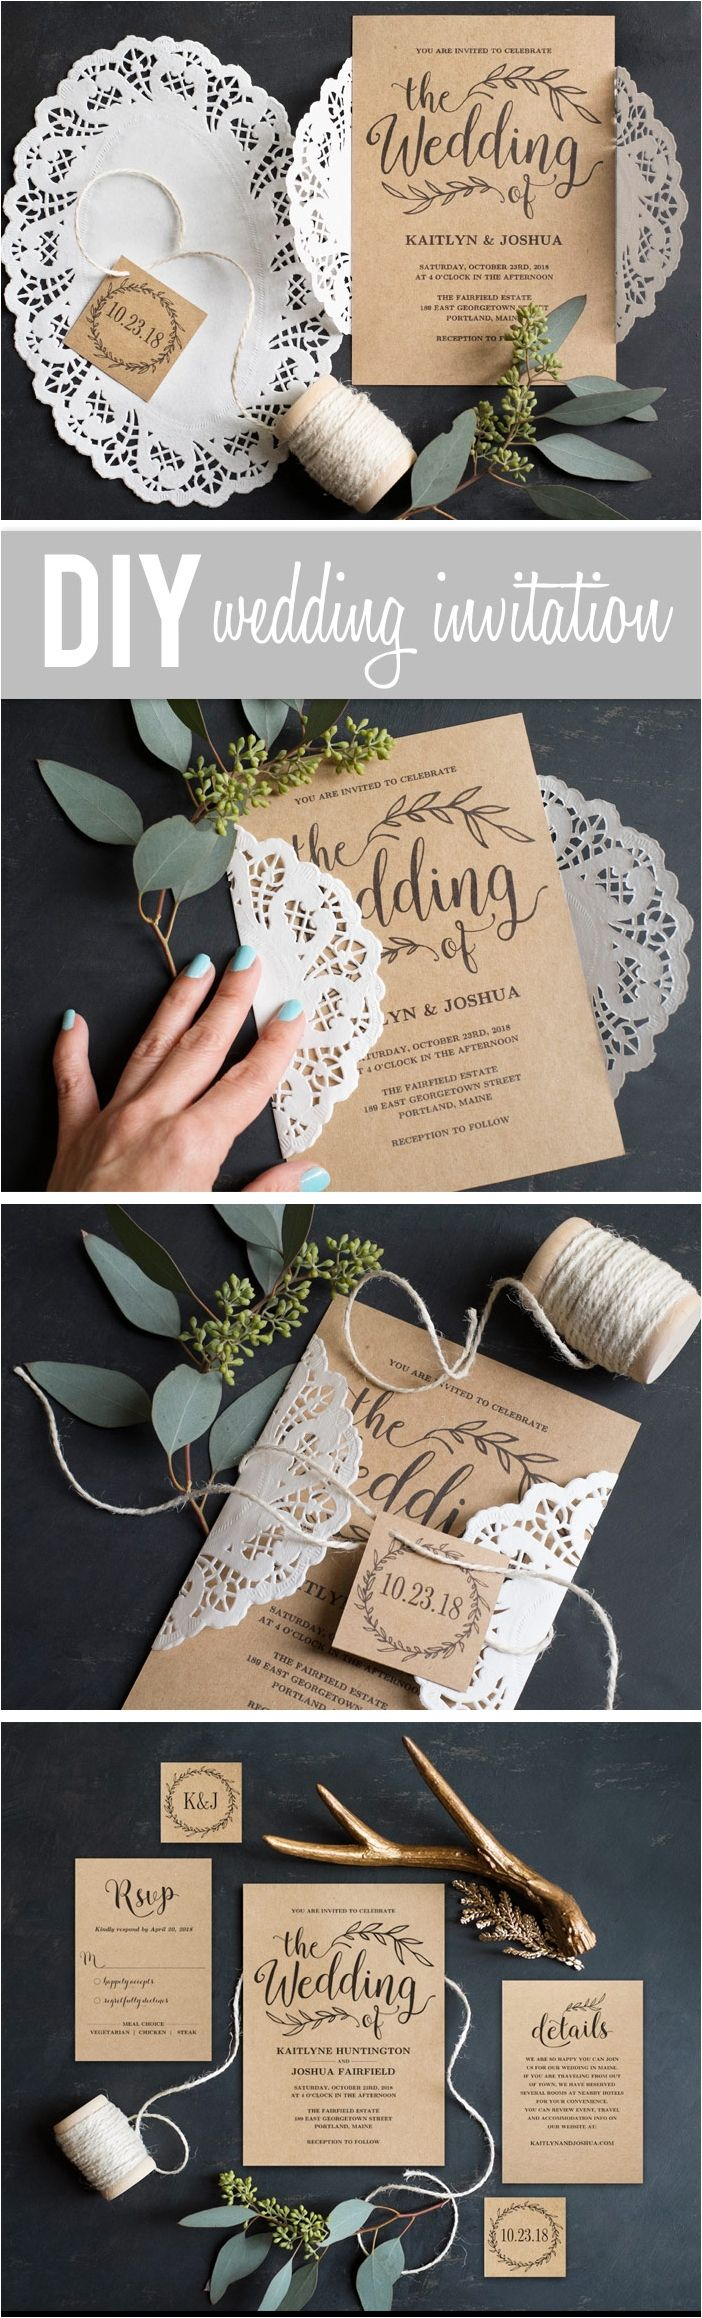 wedding invitation sample by email%0A Rustic Wedding Invitation Inspiration For Your Rustic Wedding